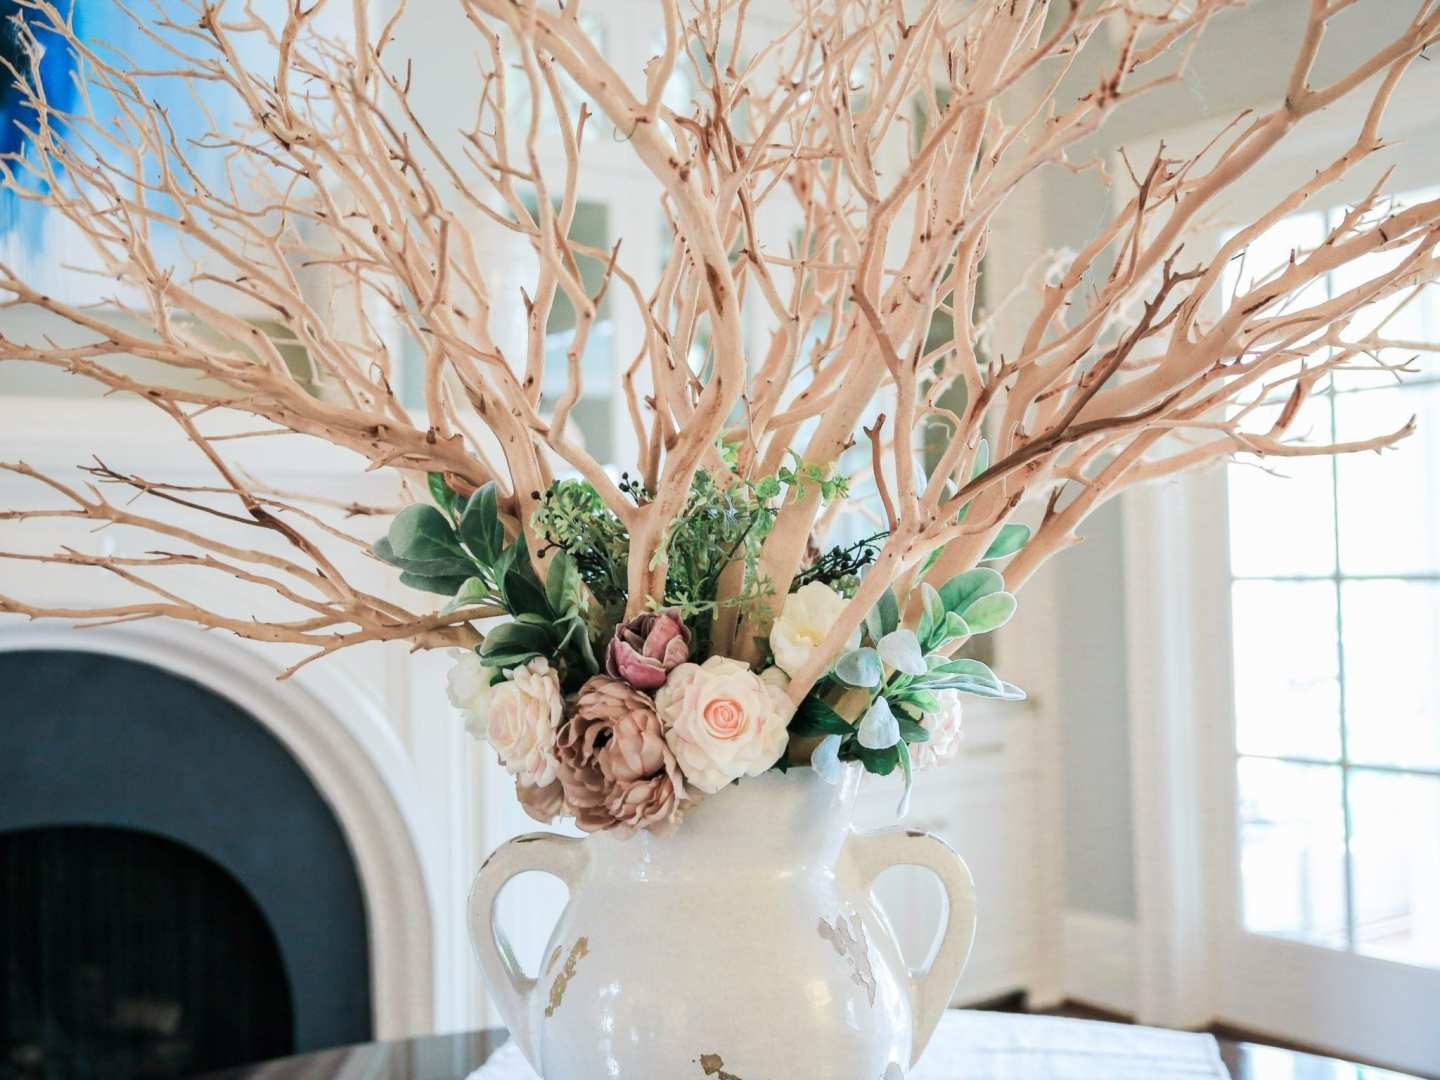 fake flowers that look real in vase using manzanita stick branches and roses.